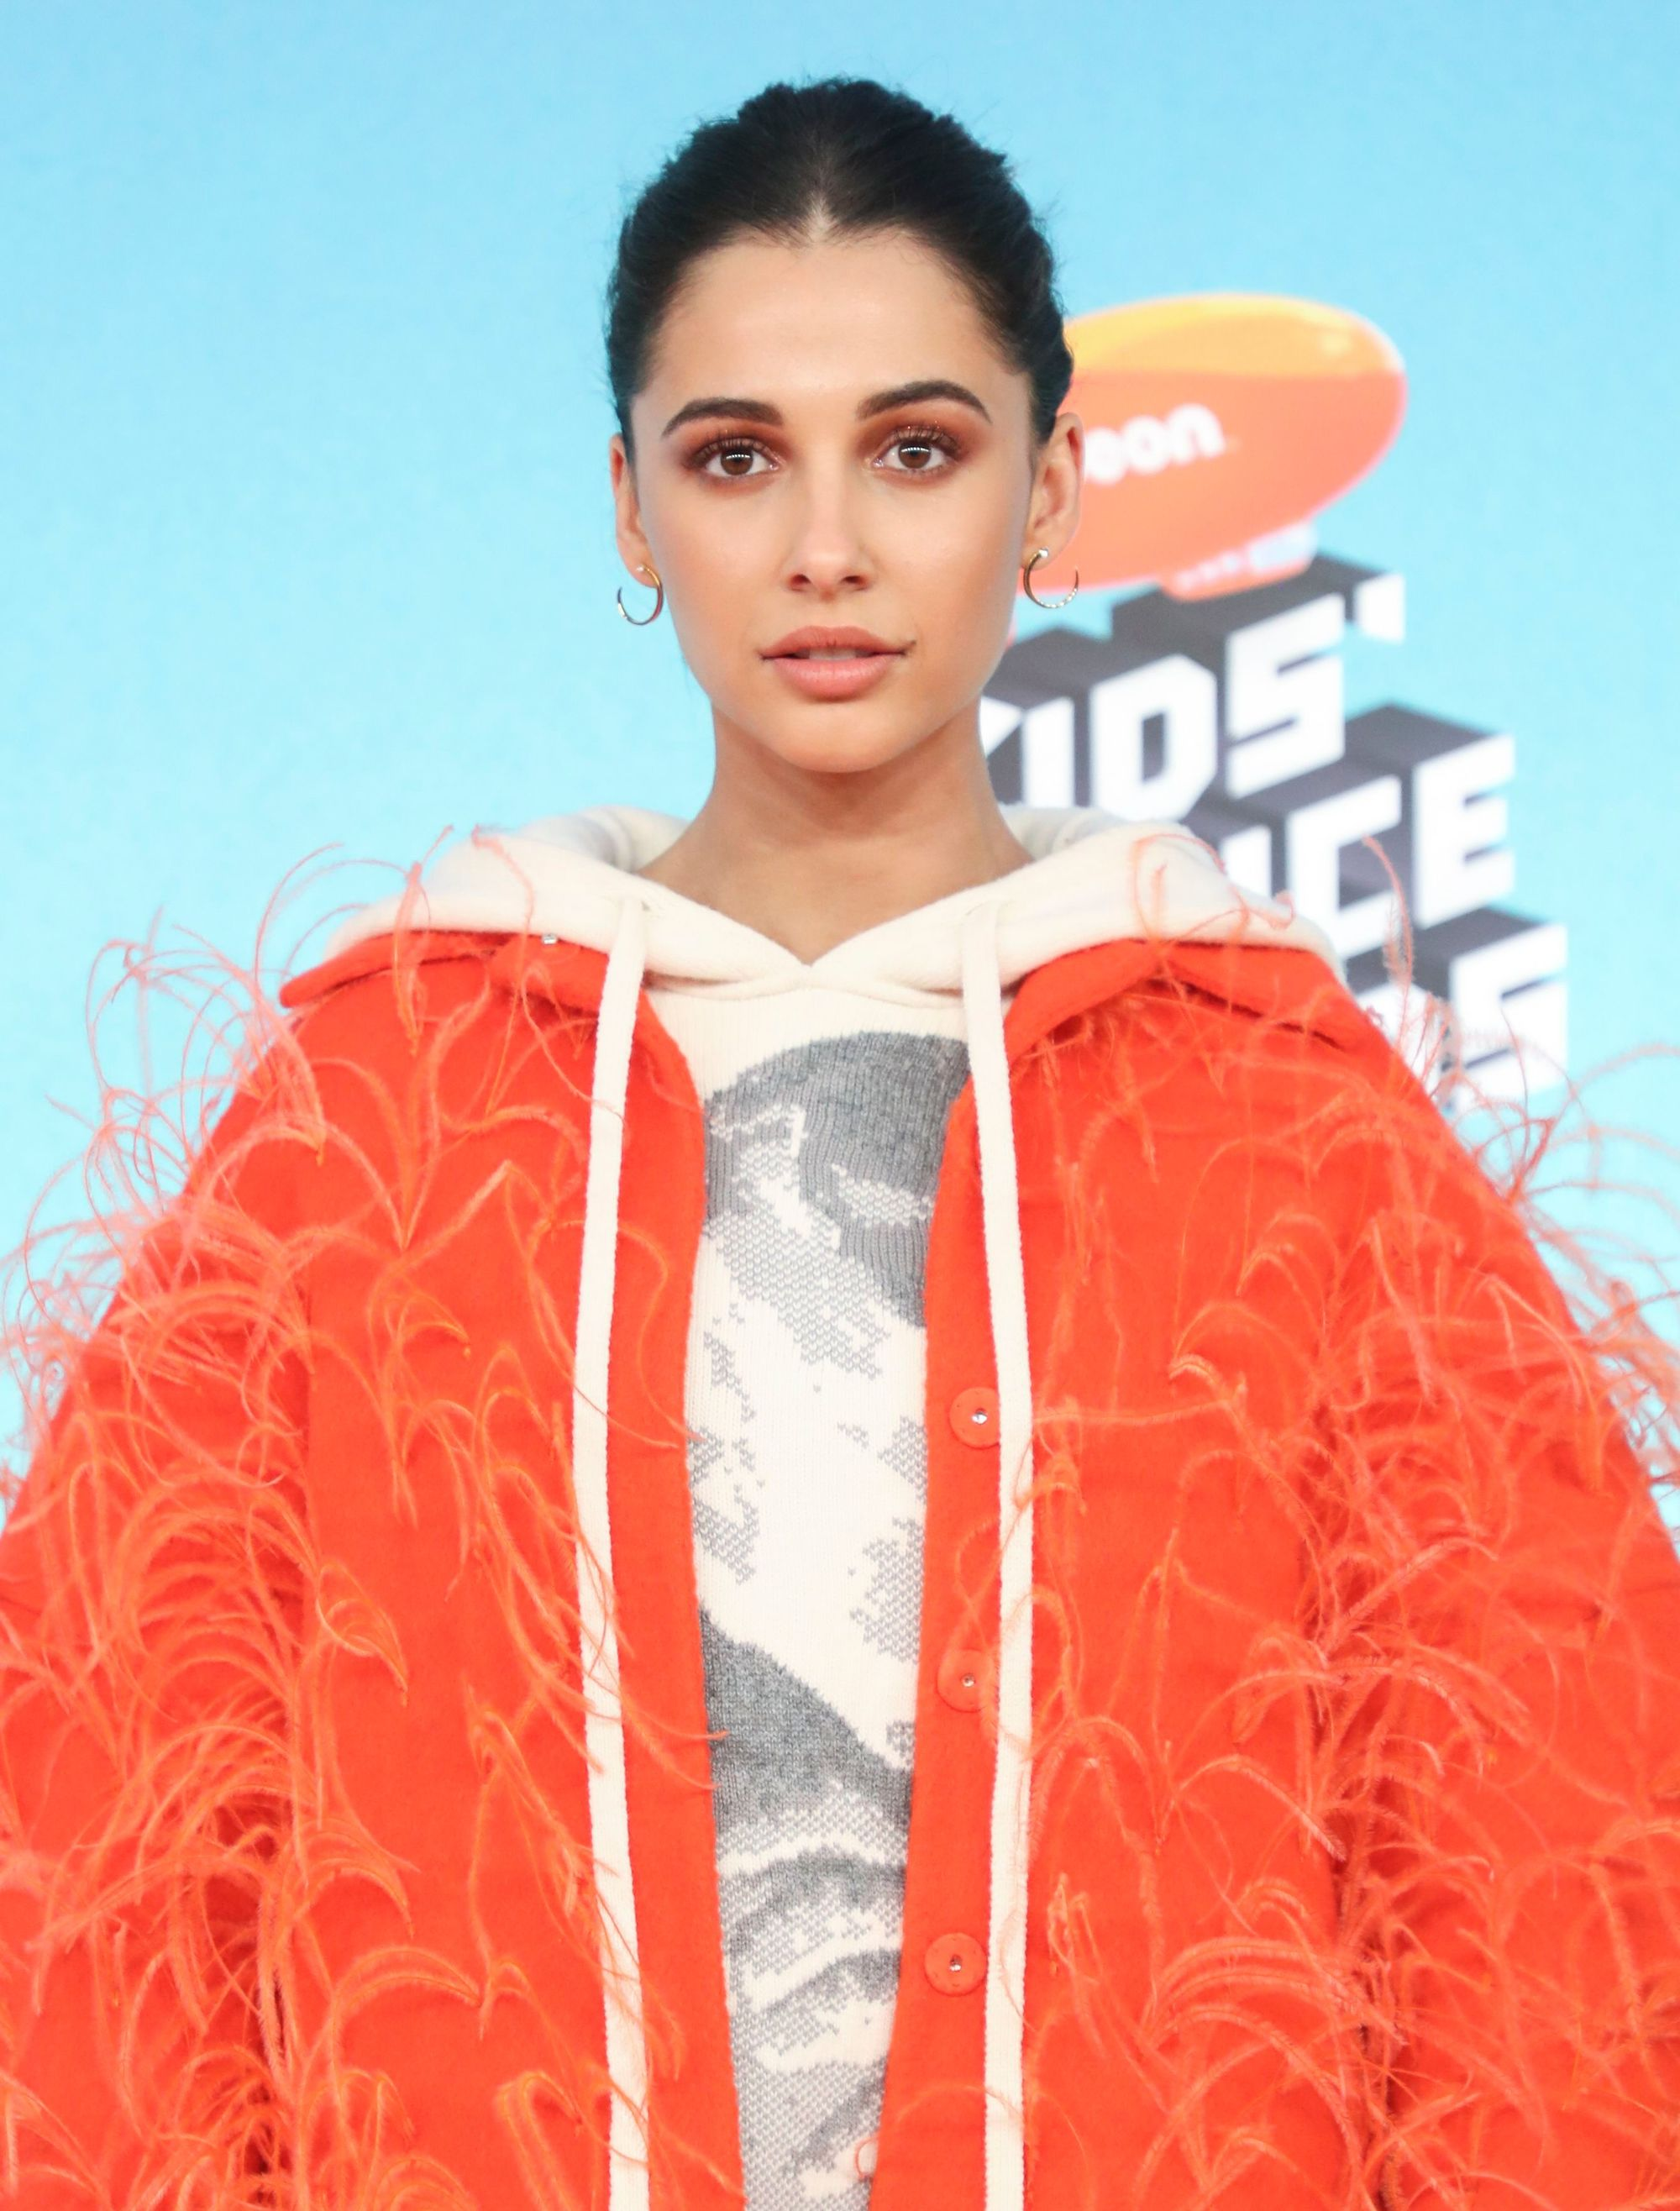 Ones to watch: Naomi Scott with brown hair in updo wearing a bright orange fluffy coat and hoodie.